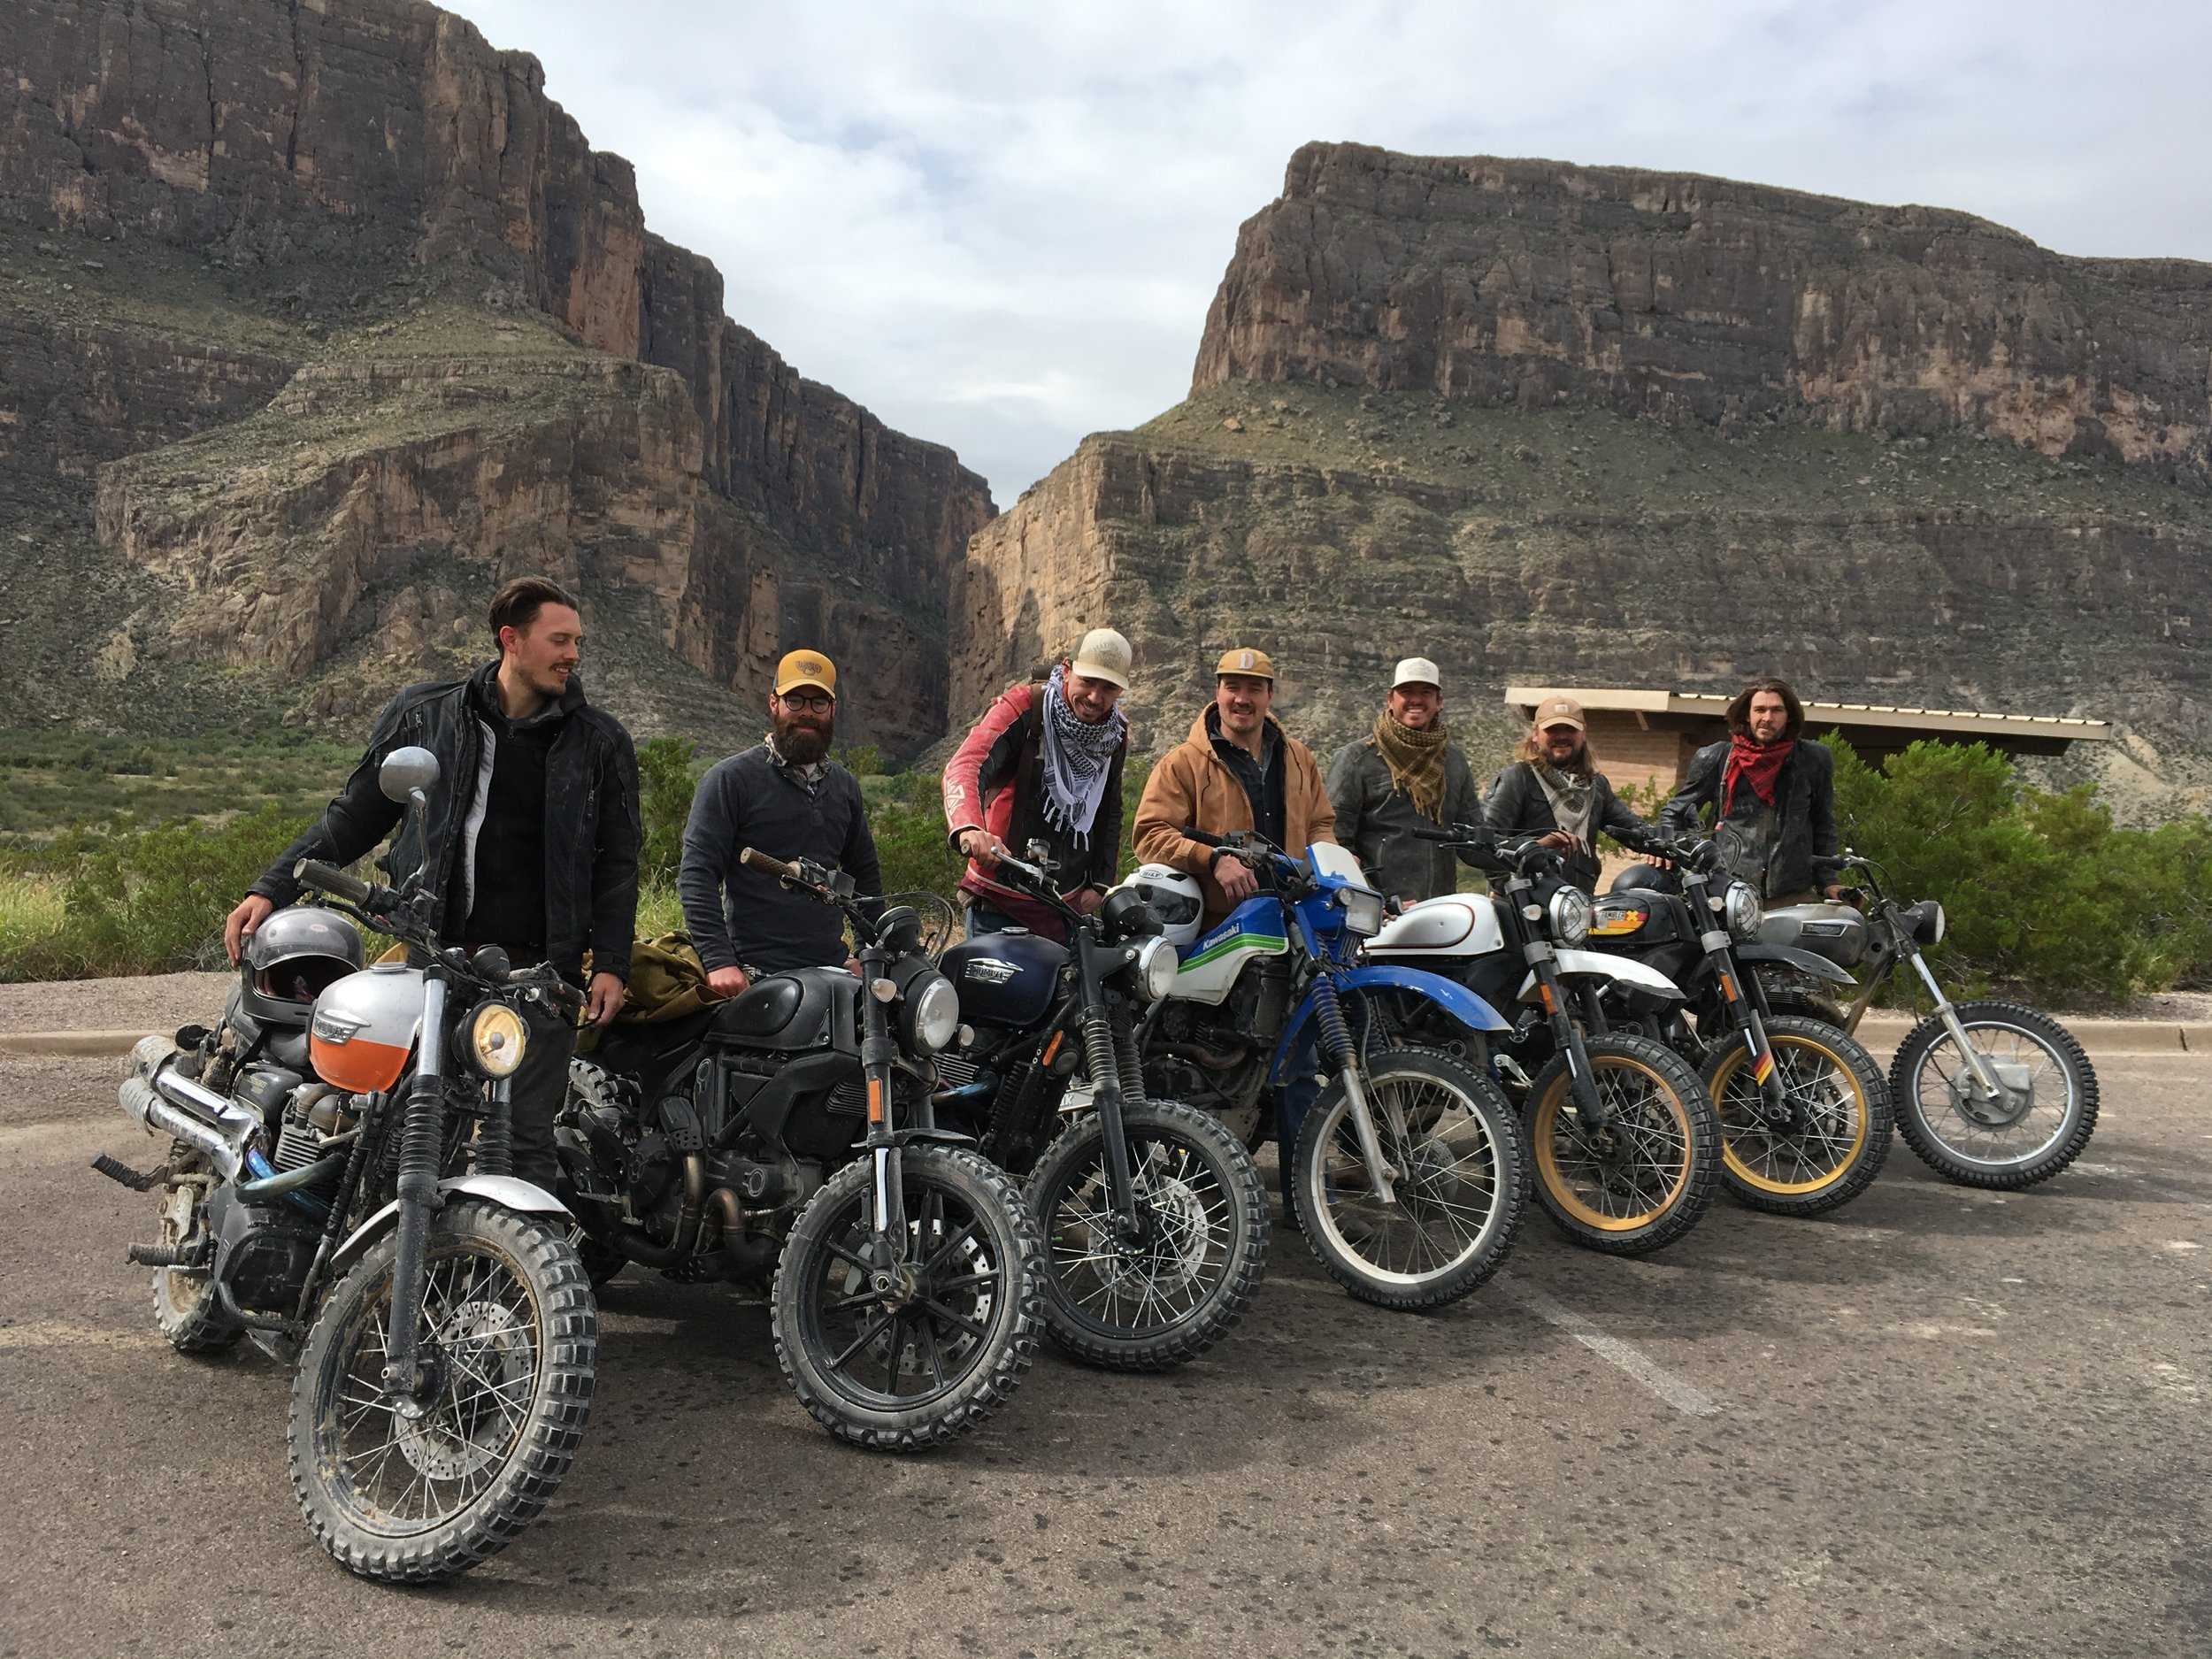 Our group of eight minus one (I was behind the camera.) These guys were awesome to ride and hang with, and are now my brothers. Our group was made up of three Ducati Scramblers, two modern Triumph Bonnies, a lone Kawasaki 250, and two 1971 Triumphs. Big Bend is an almost surreal environ, with a stark beauty that is hard to forget.